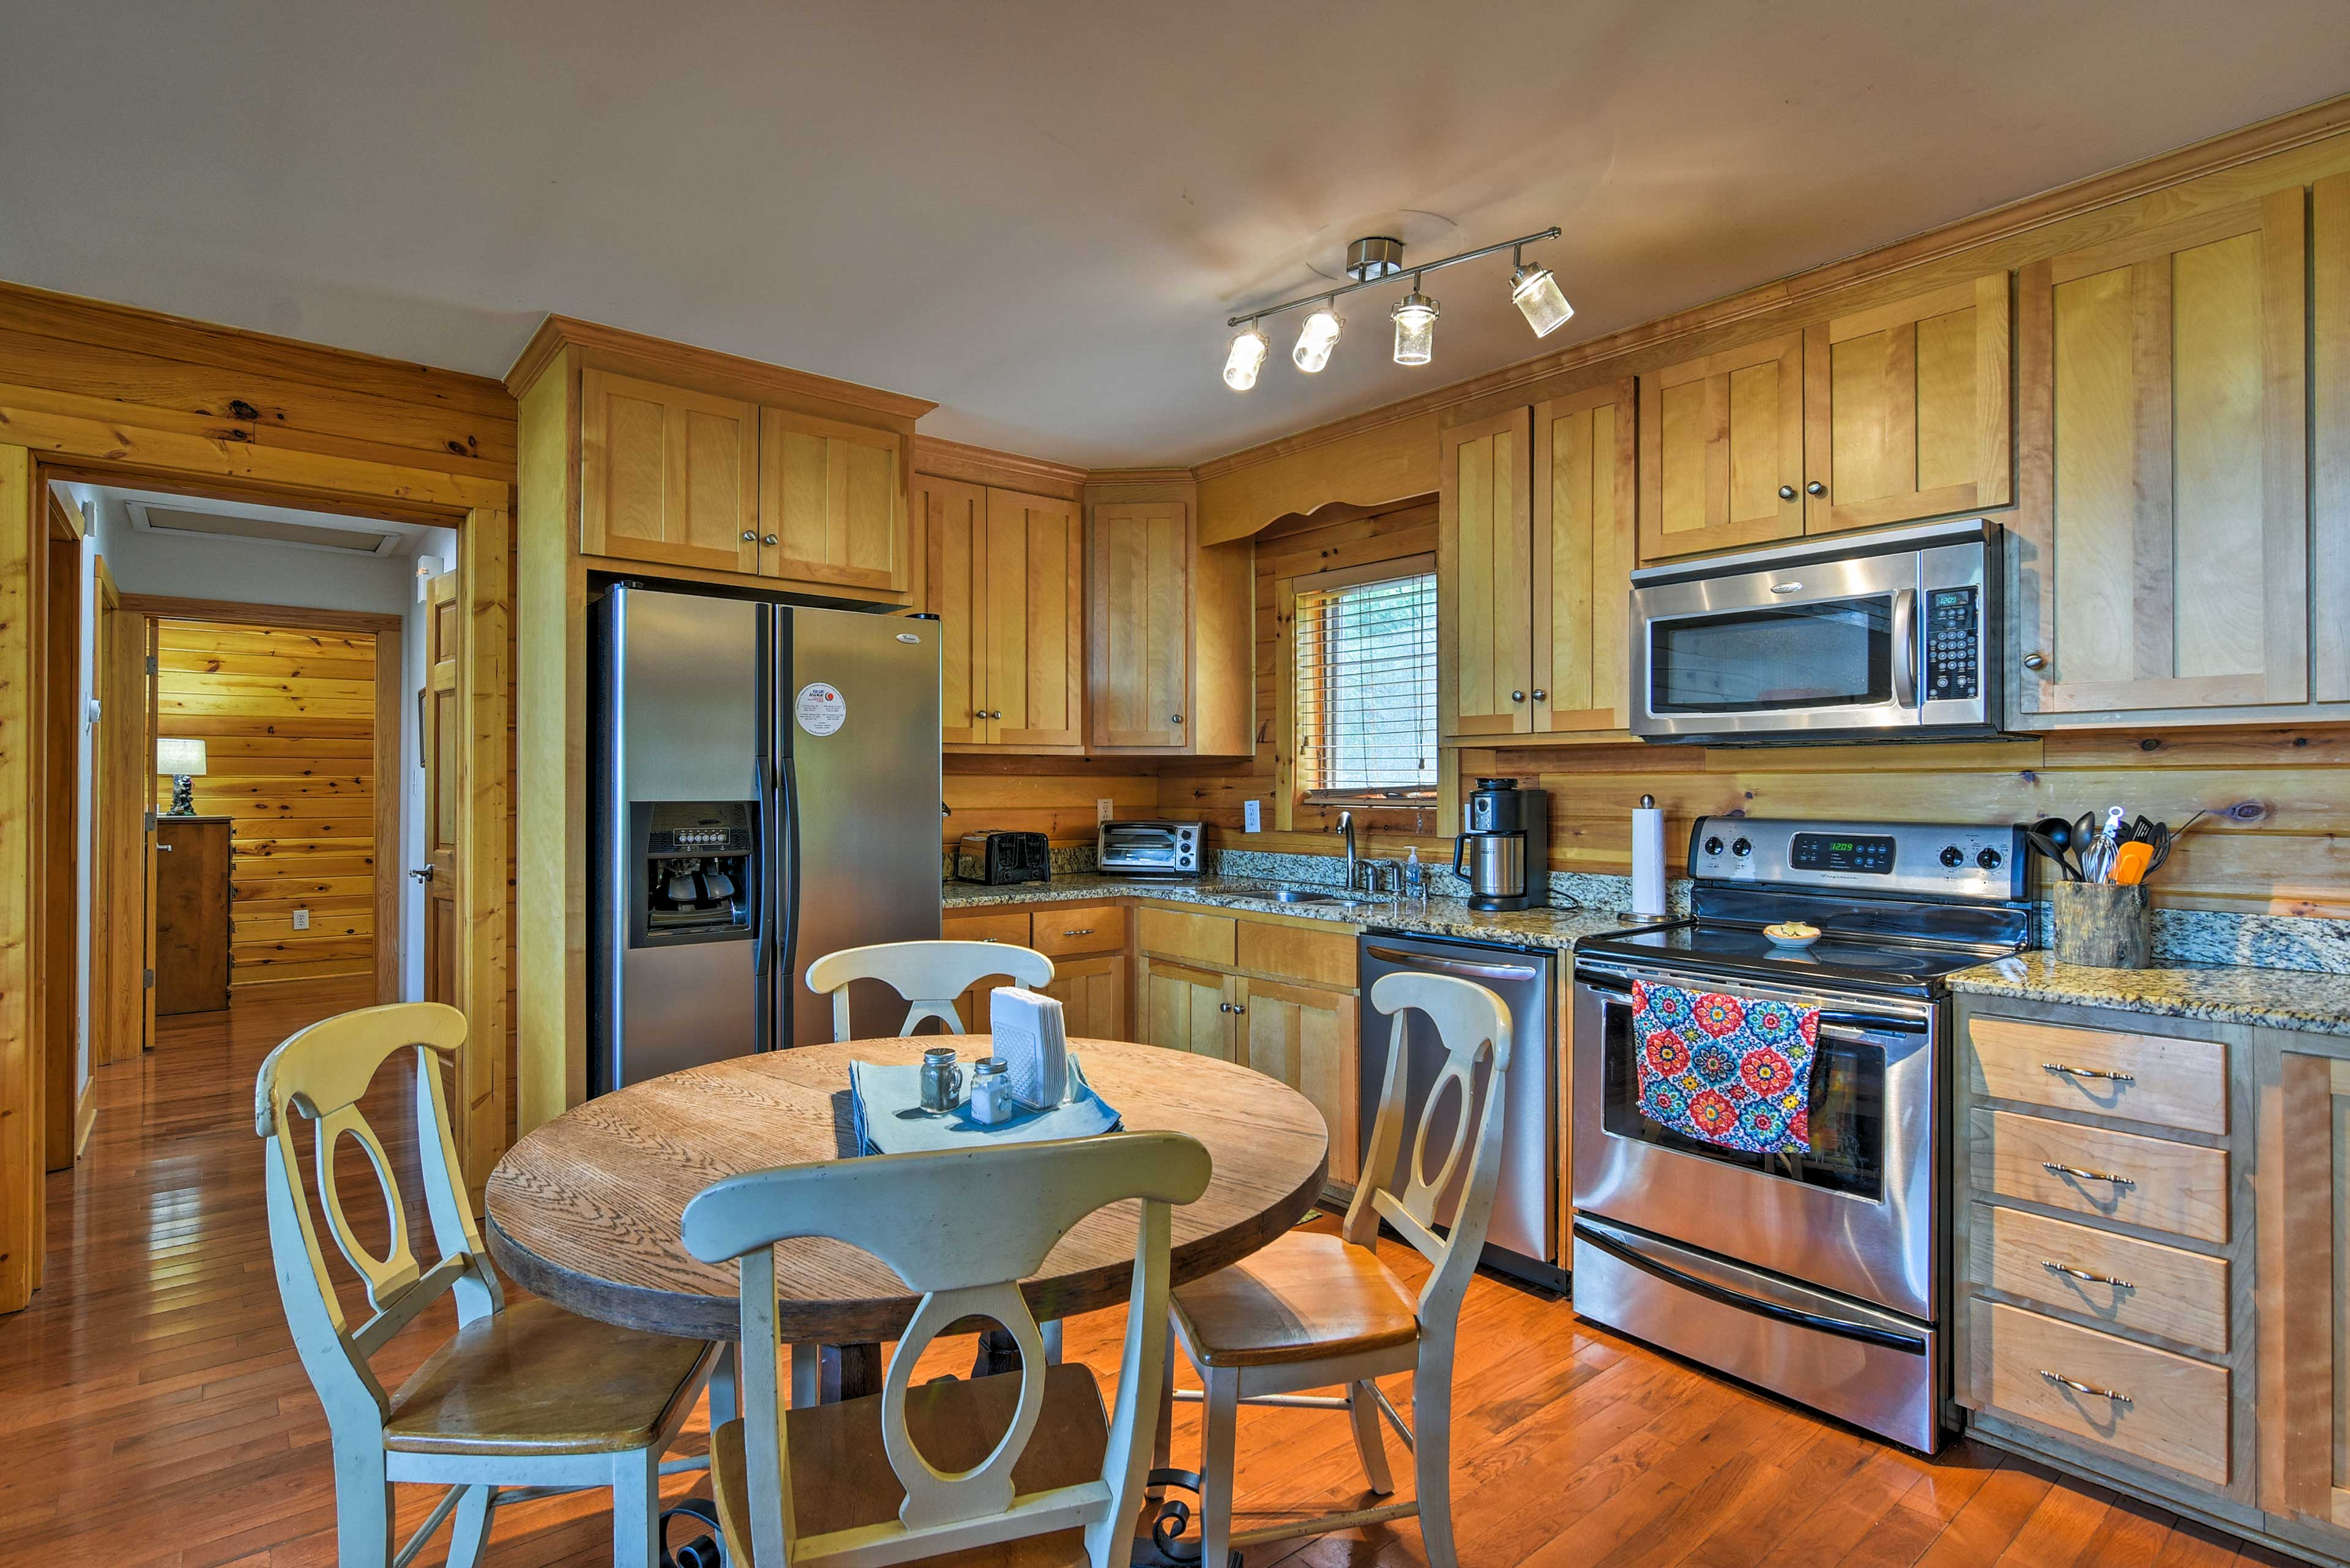 The kitchen provides additional seating at the 4-person table and breakfast bar.